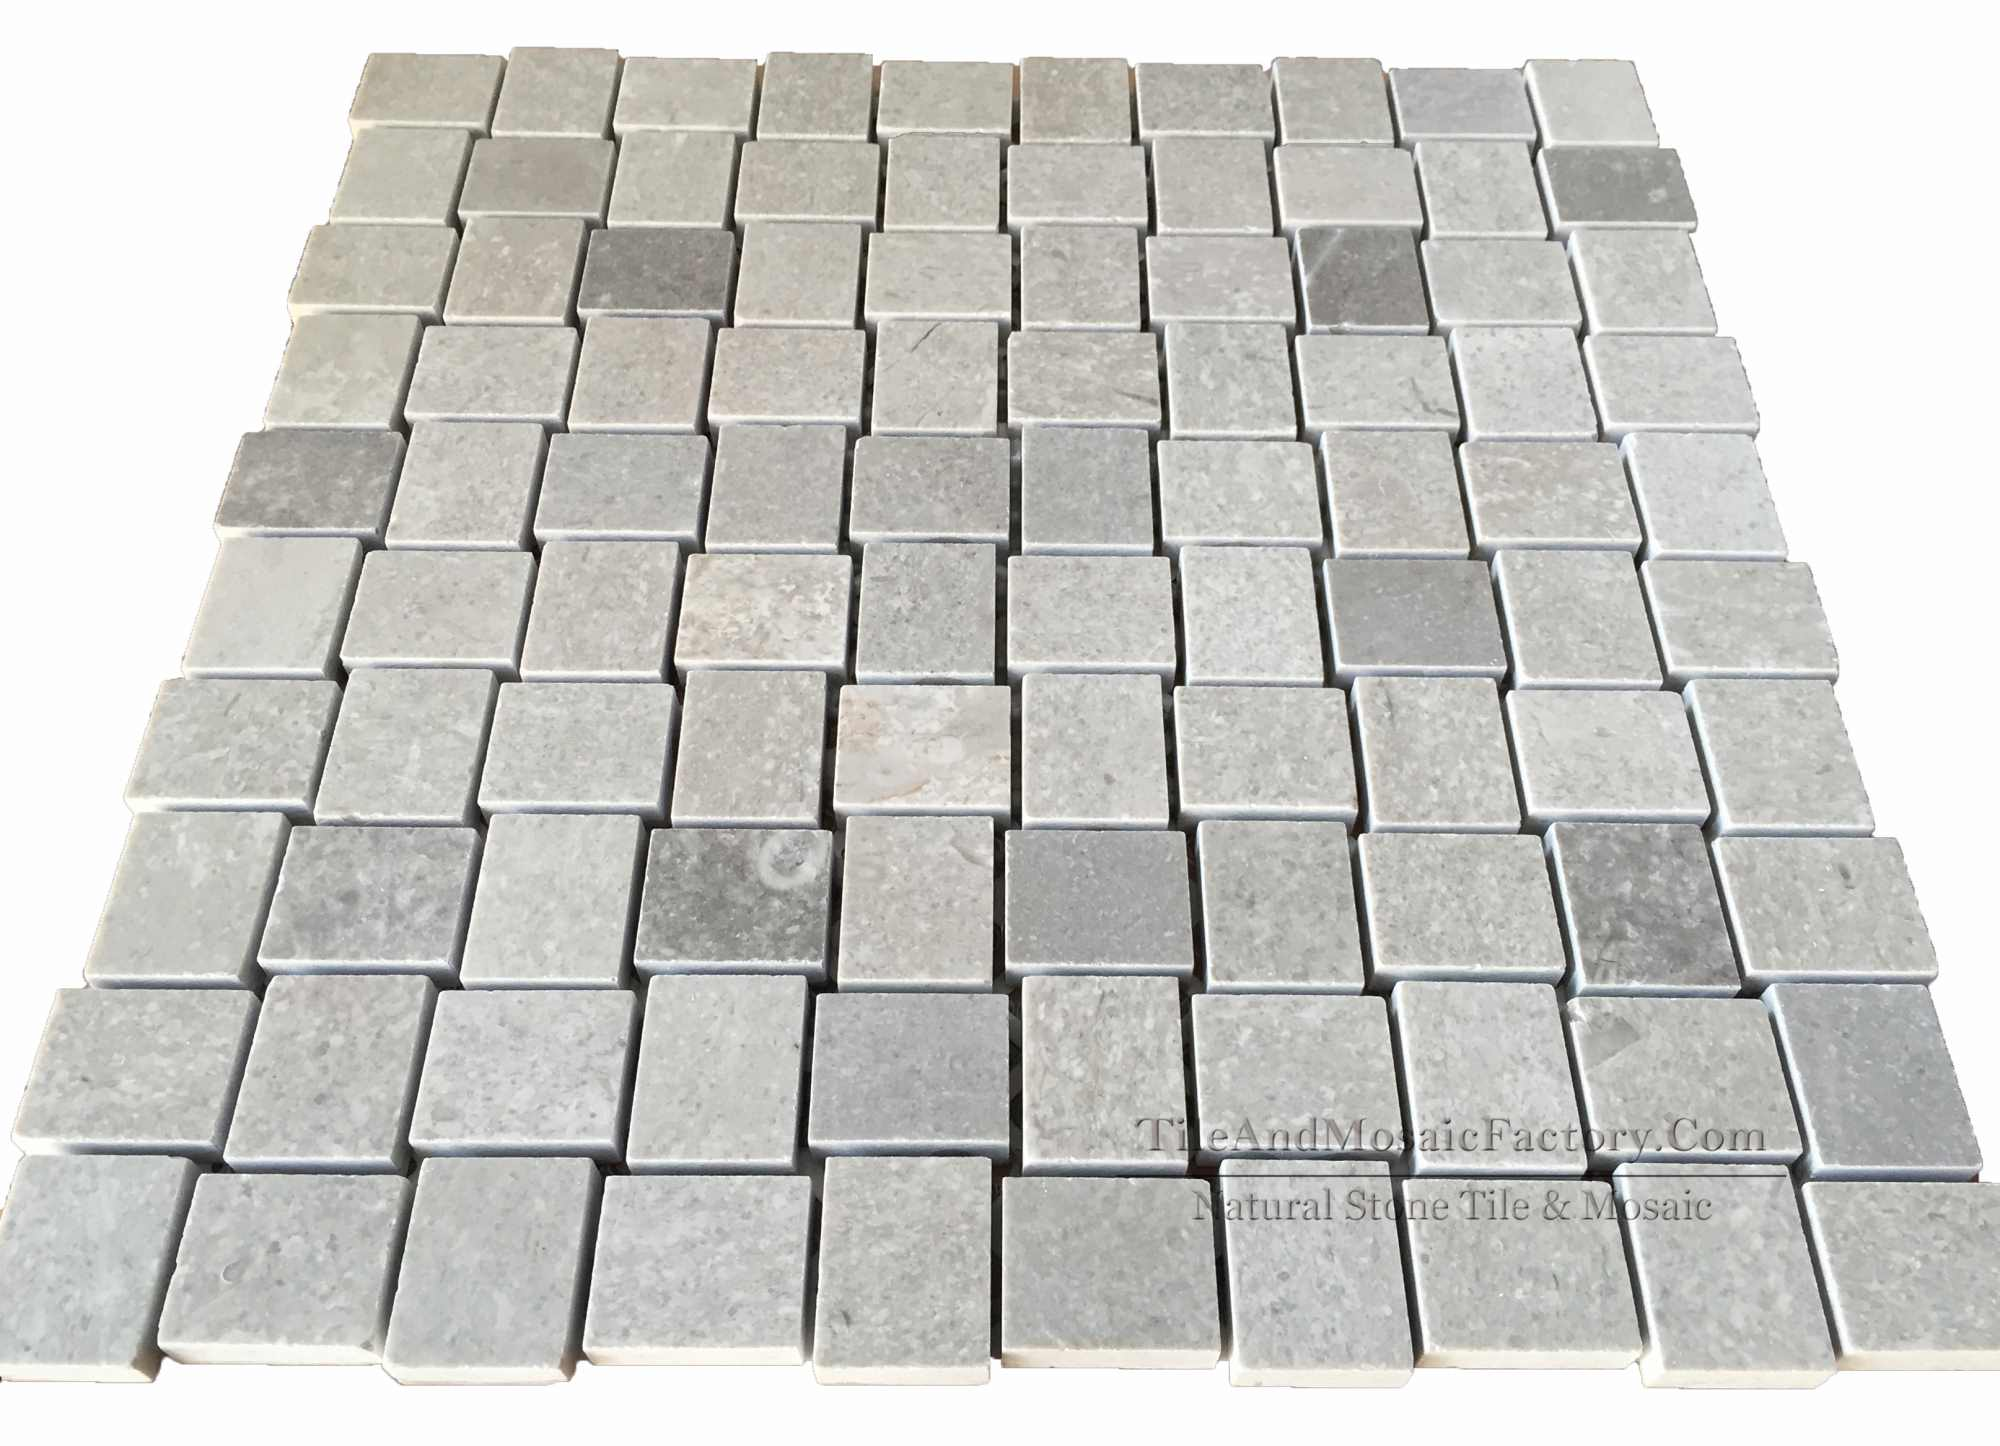 Starlight Stagger 2.6 x 3.2 cm Polished Grey Limestone Mosaic